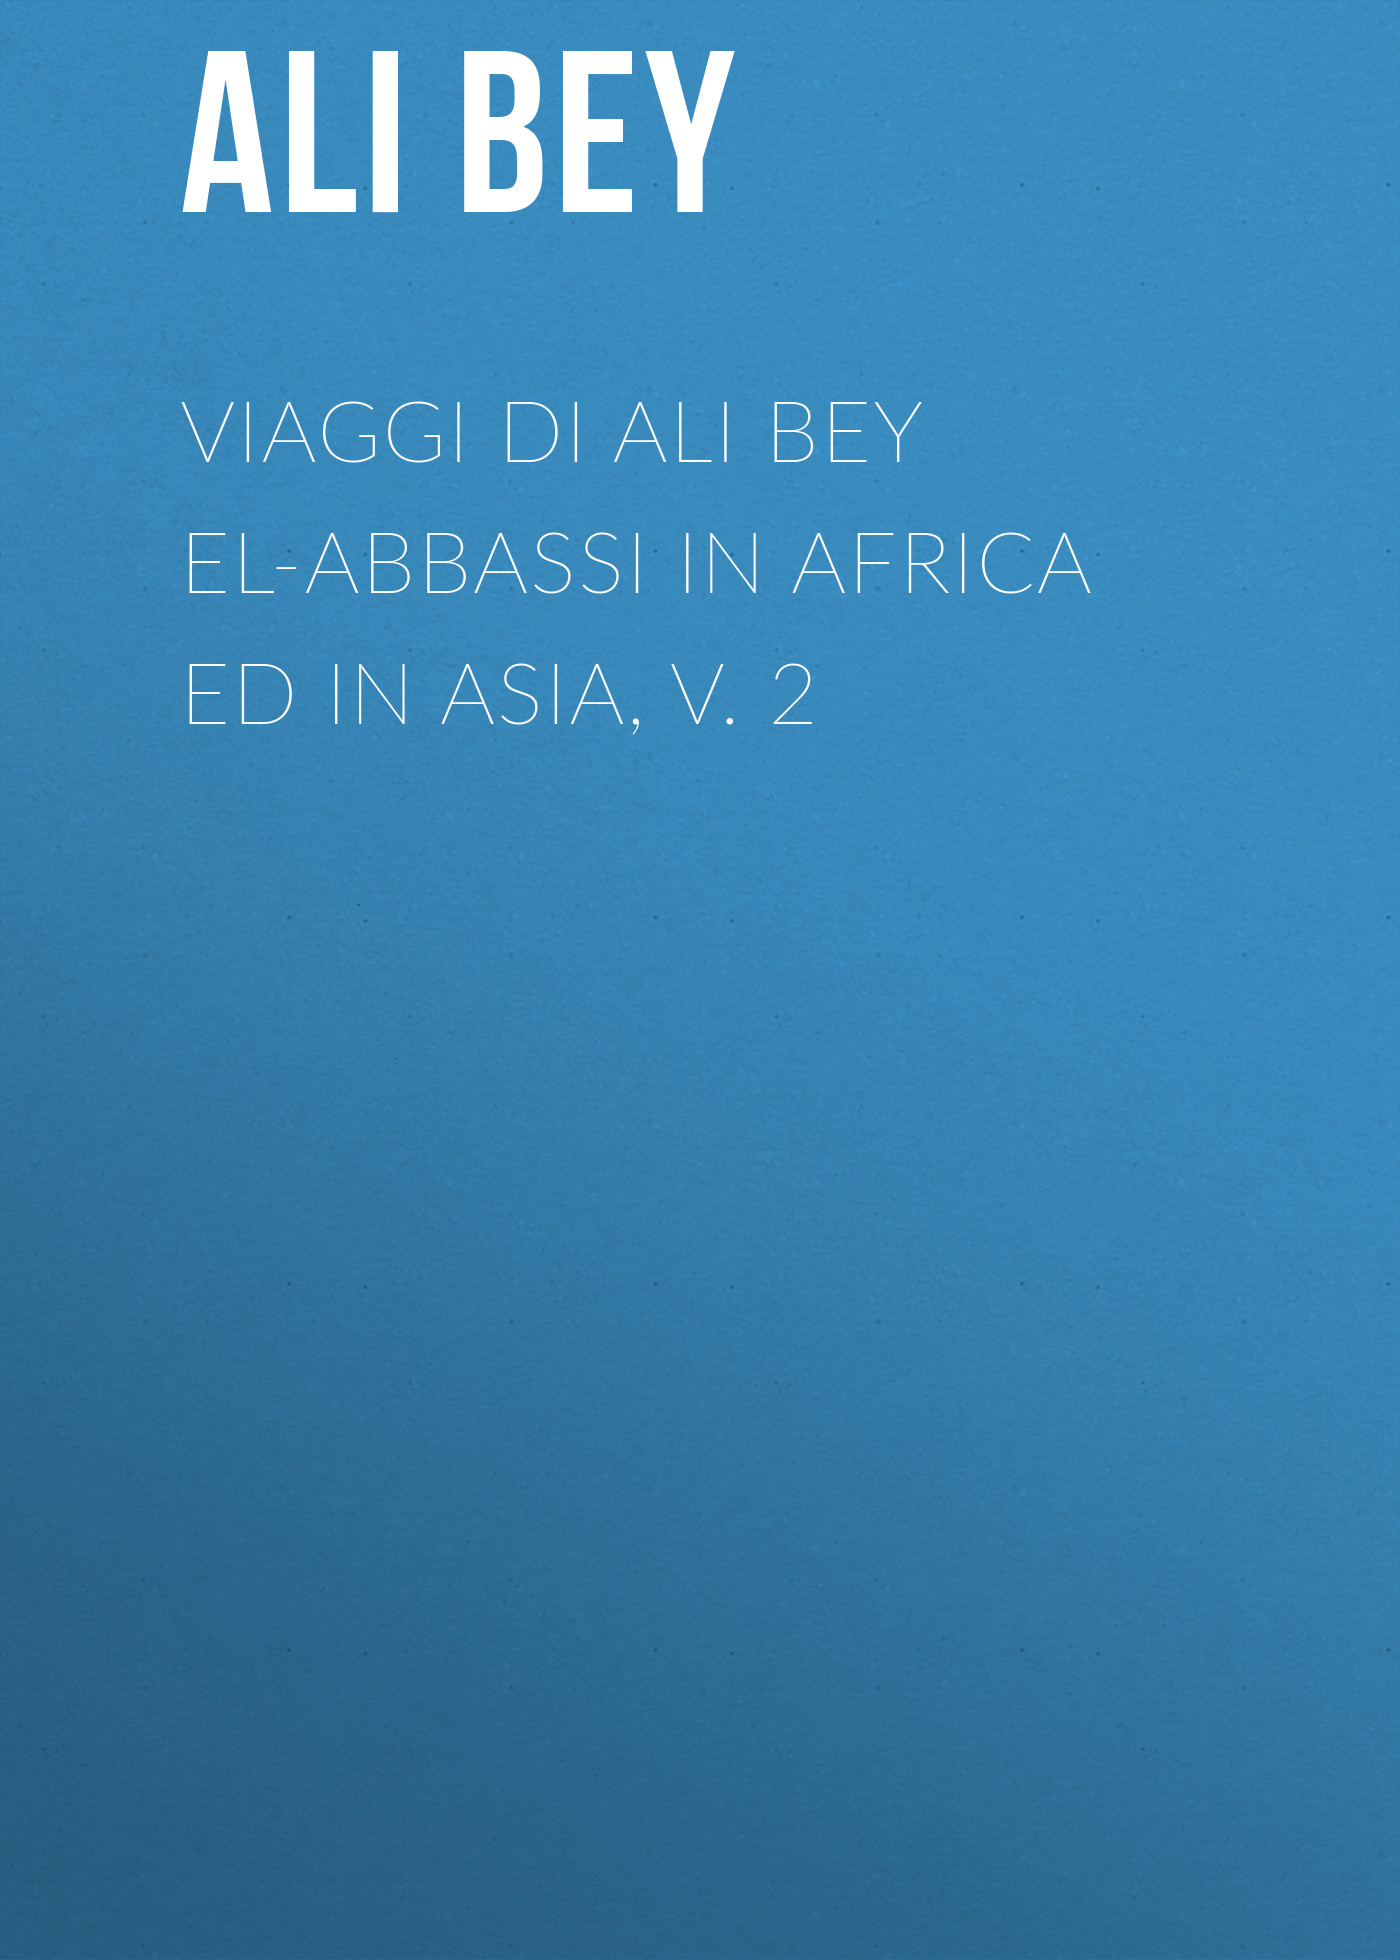 Ali Bey Viaggi di Ali Bey el-Abbassi in Africa ed in Asia, v. 2 sustaining rice production in tropical africa